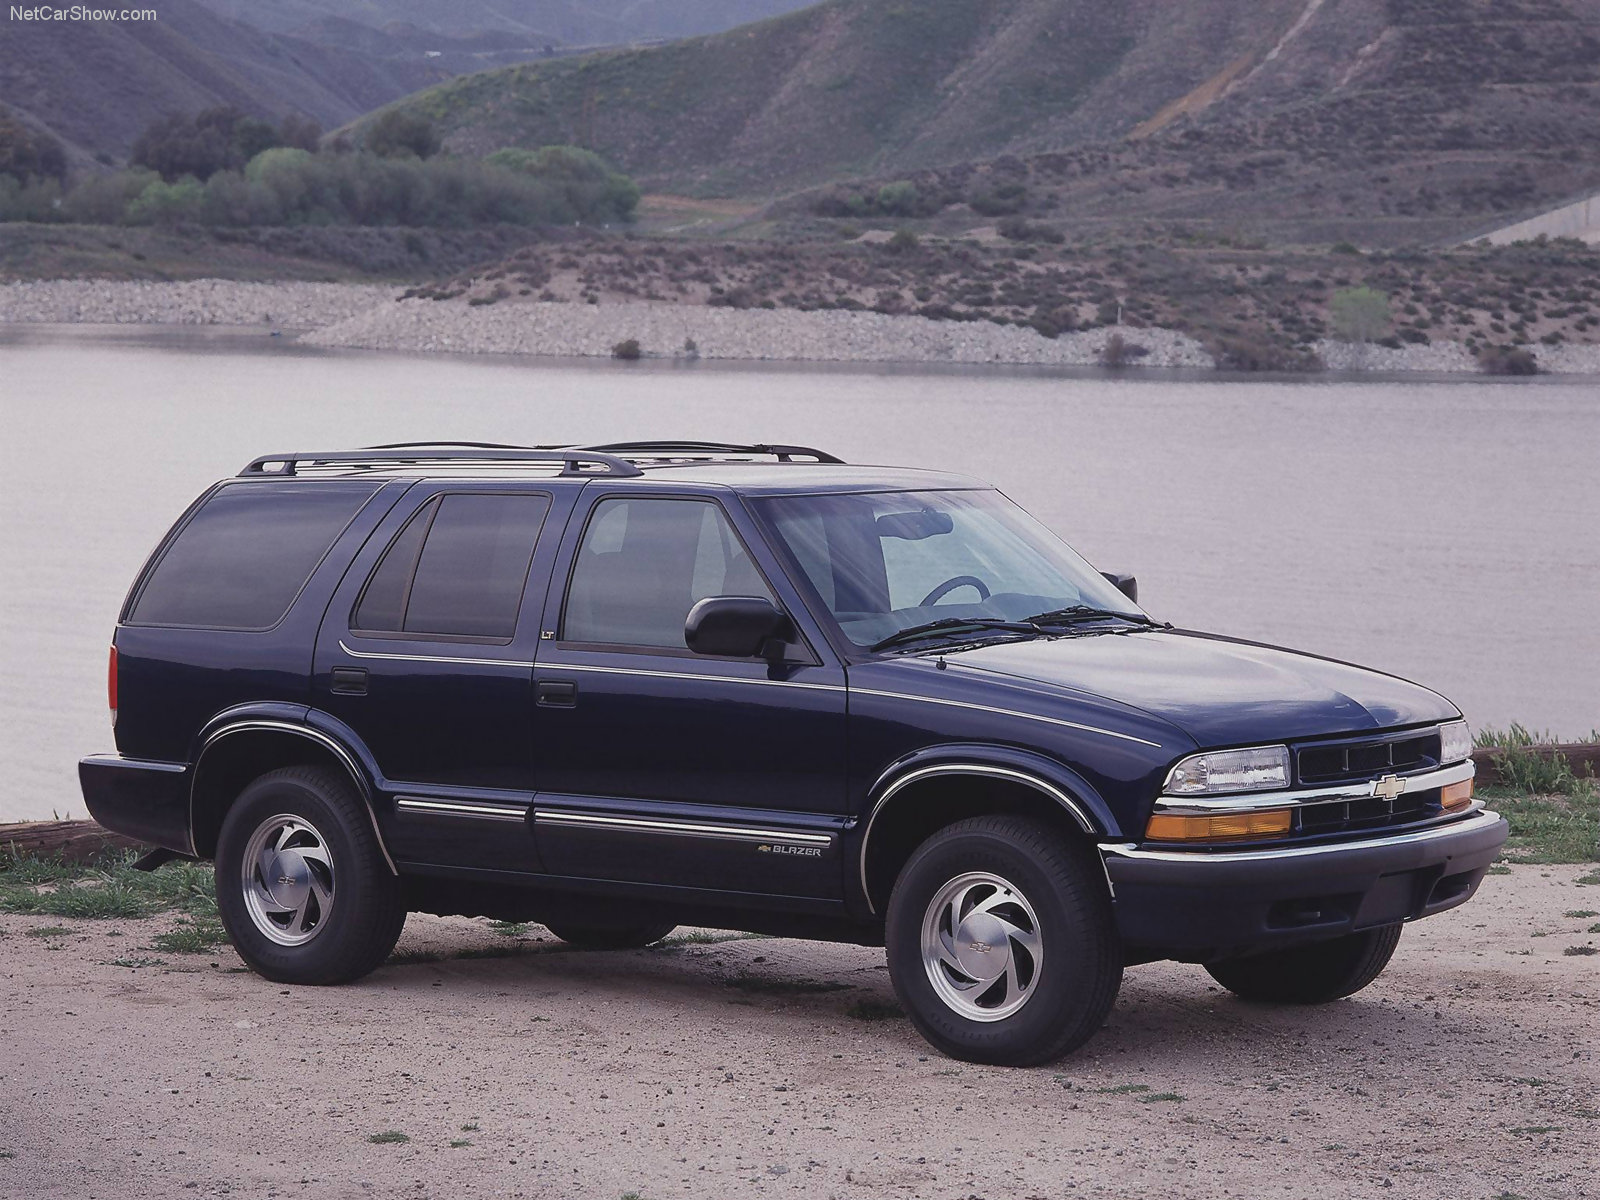 2001 Chevrolet Blazer Ls 2 Door 2wd Photo 7